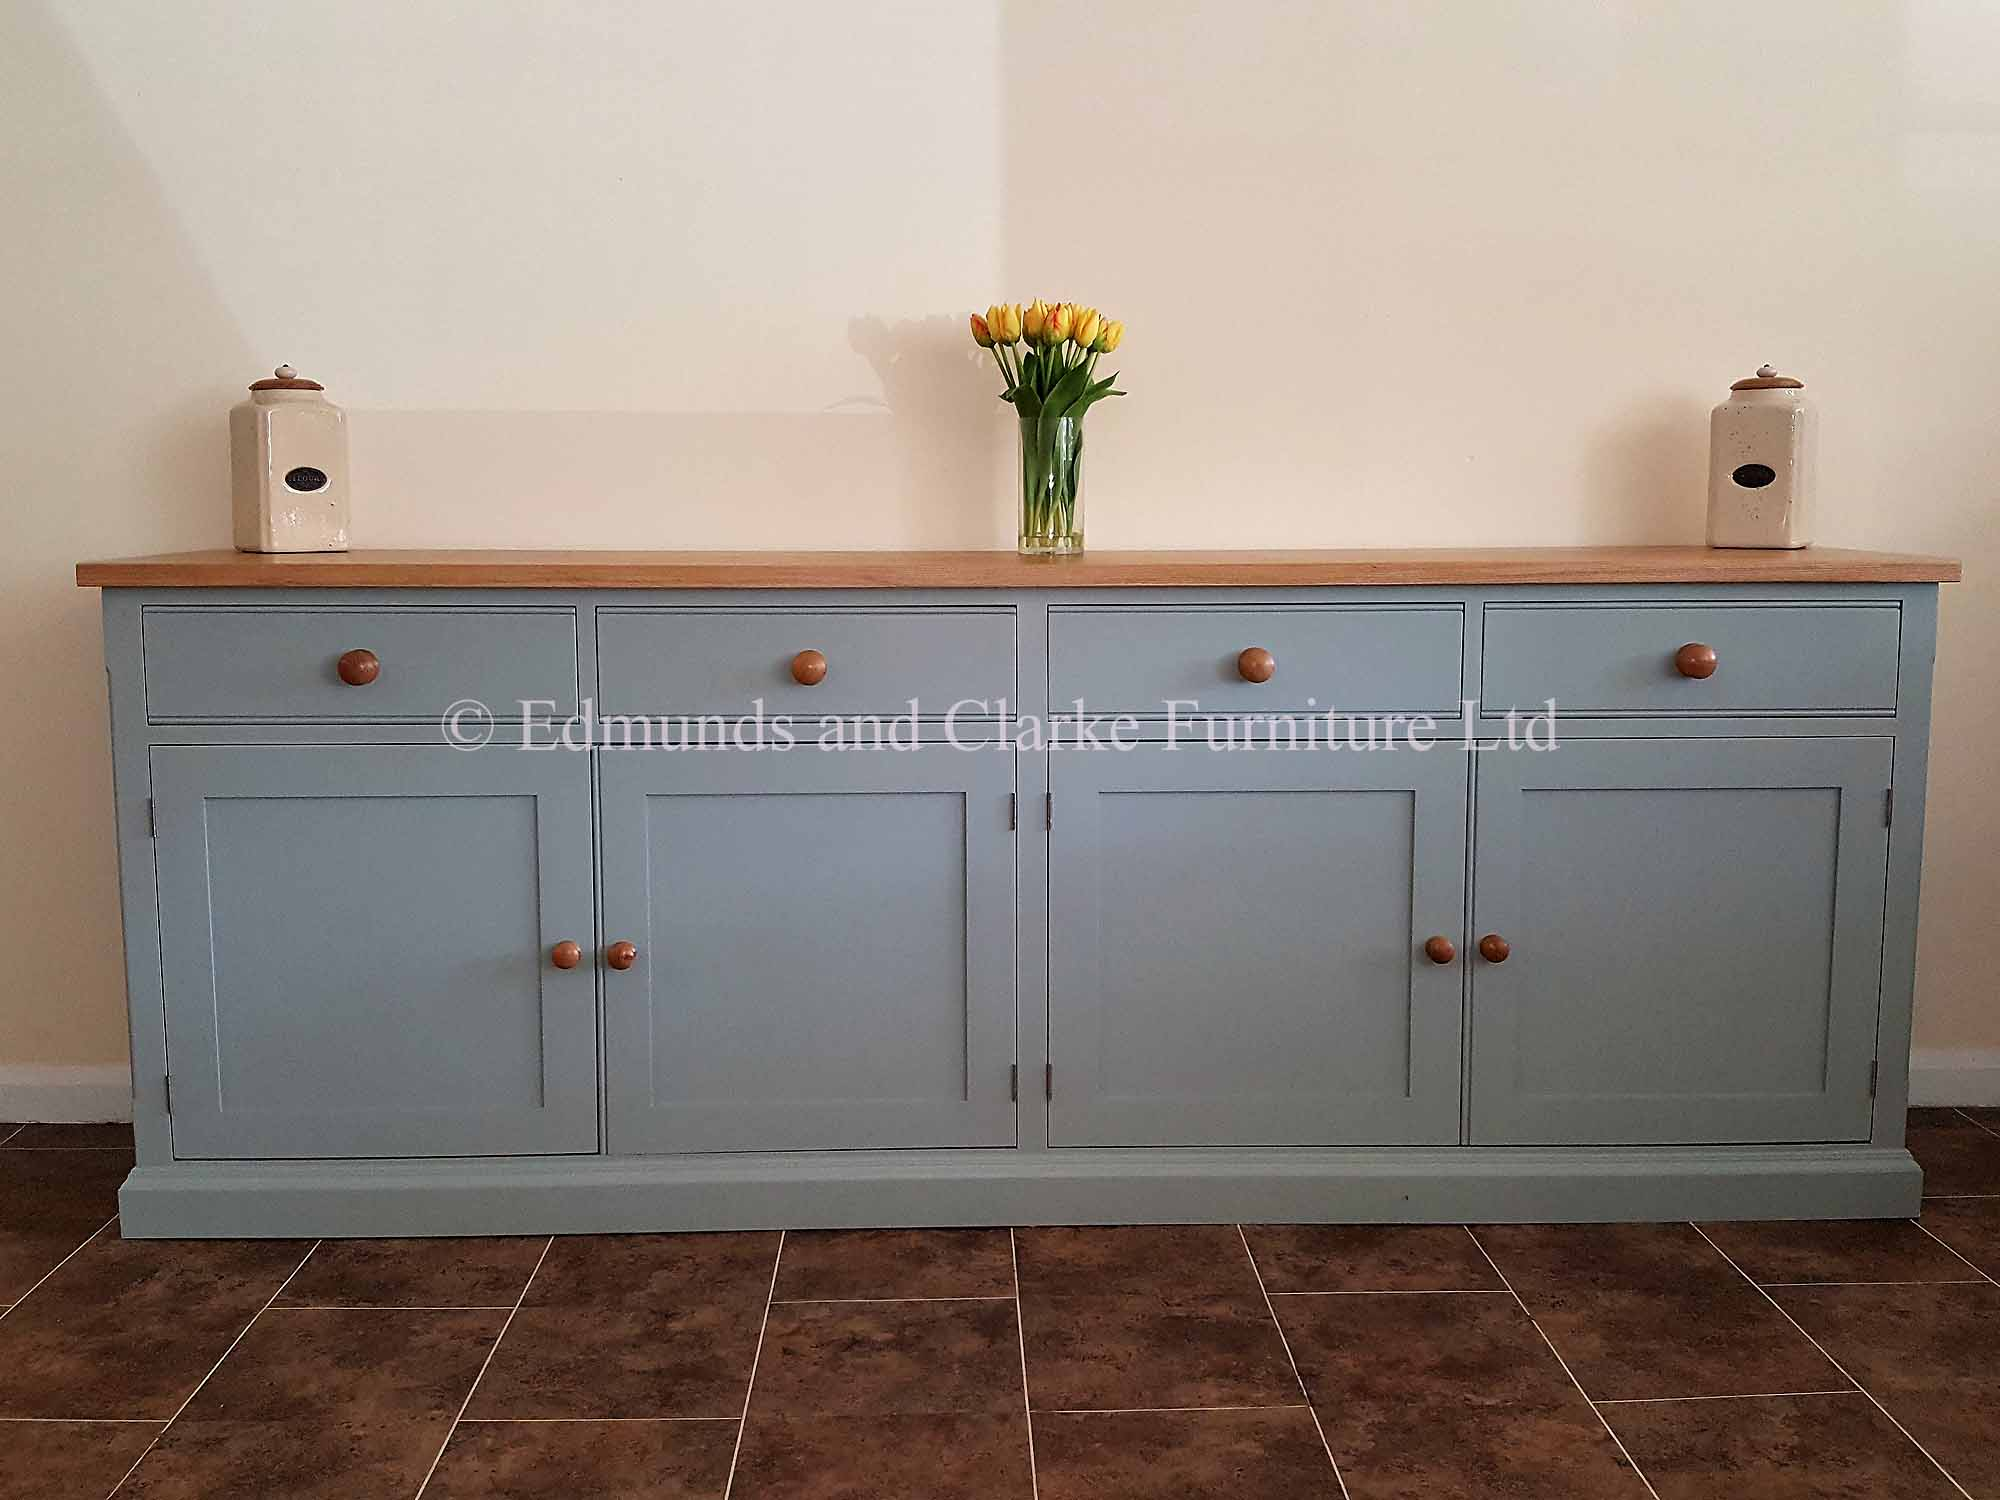 edmunds painted 8ft sideboard. solid oak top with 4 wide drawers and doors. 10 colours to choose from and lots of handle and knob options